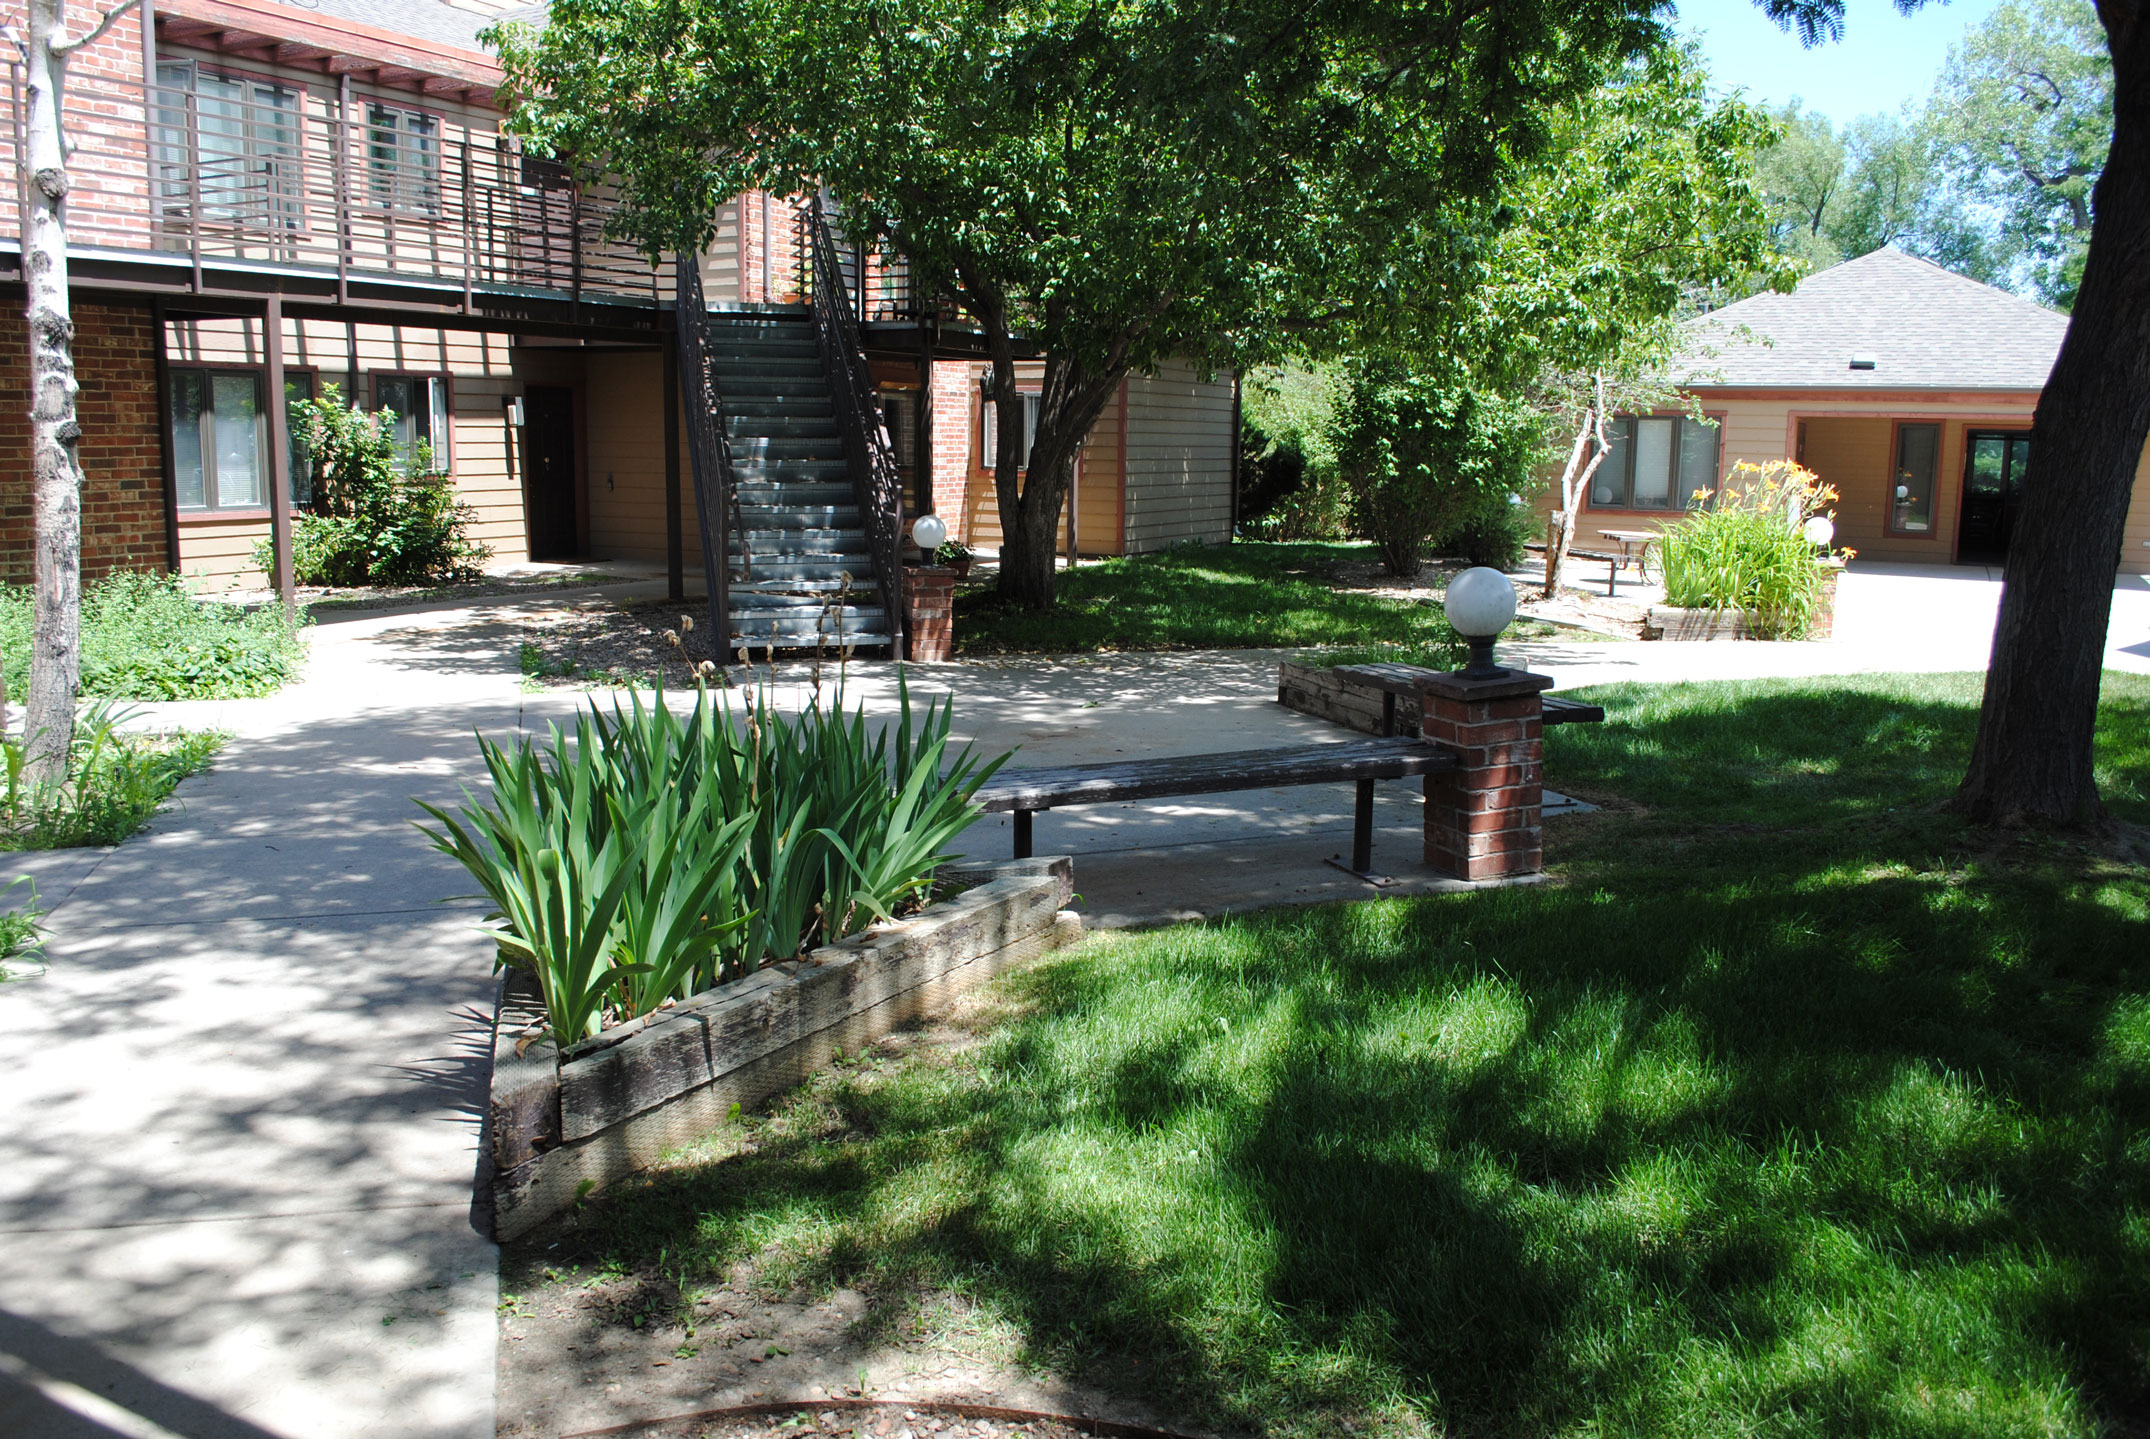 Image of Sage Court Apartments in Boulder, Colorado